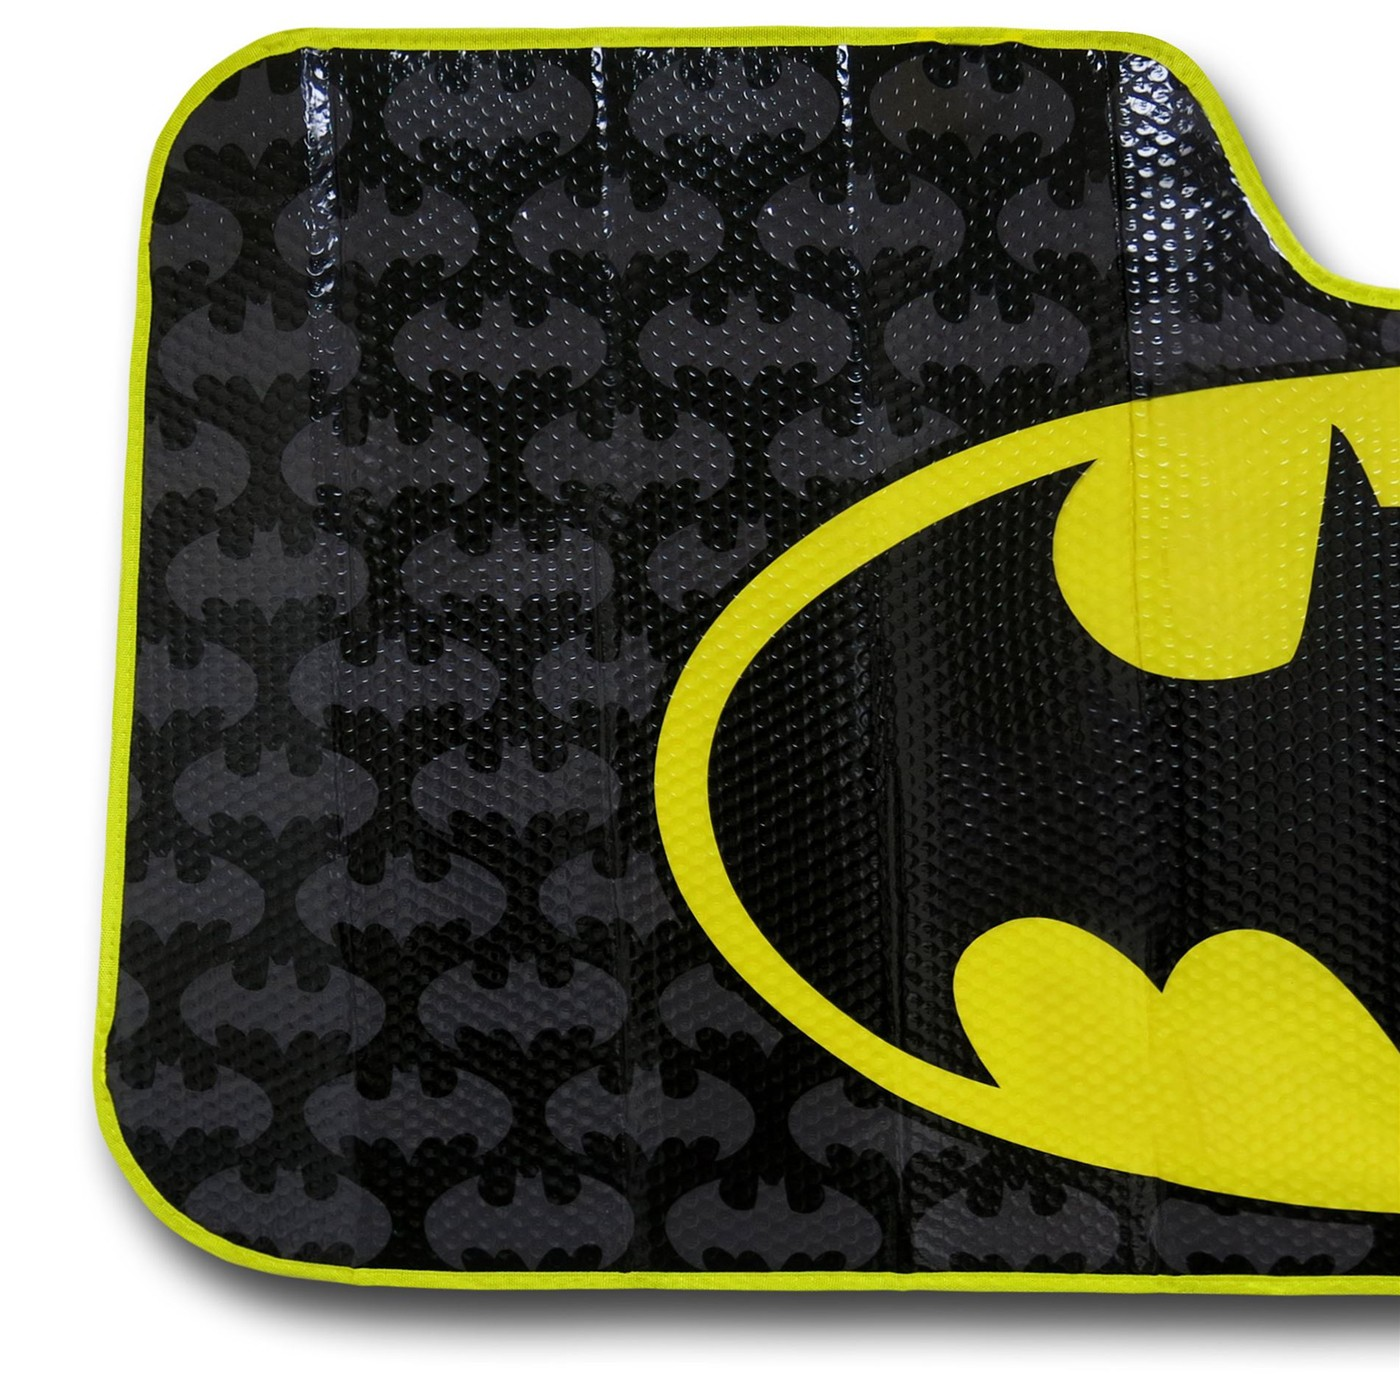 Batman Symbol Car Sunshade